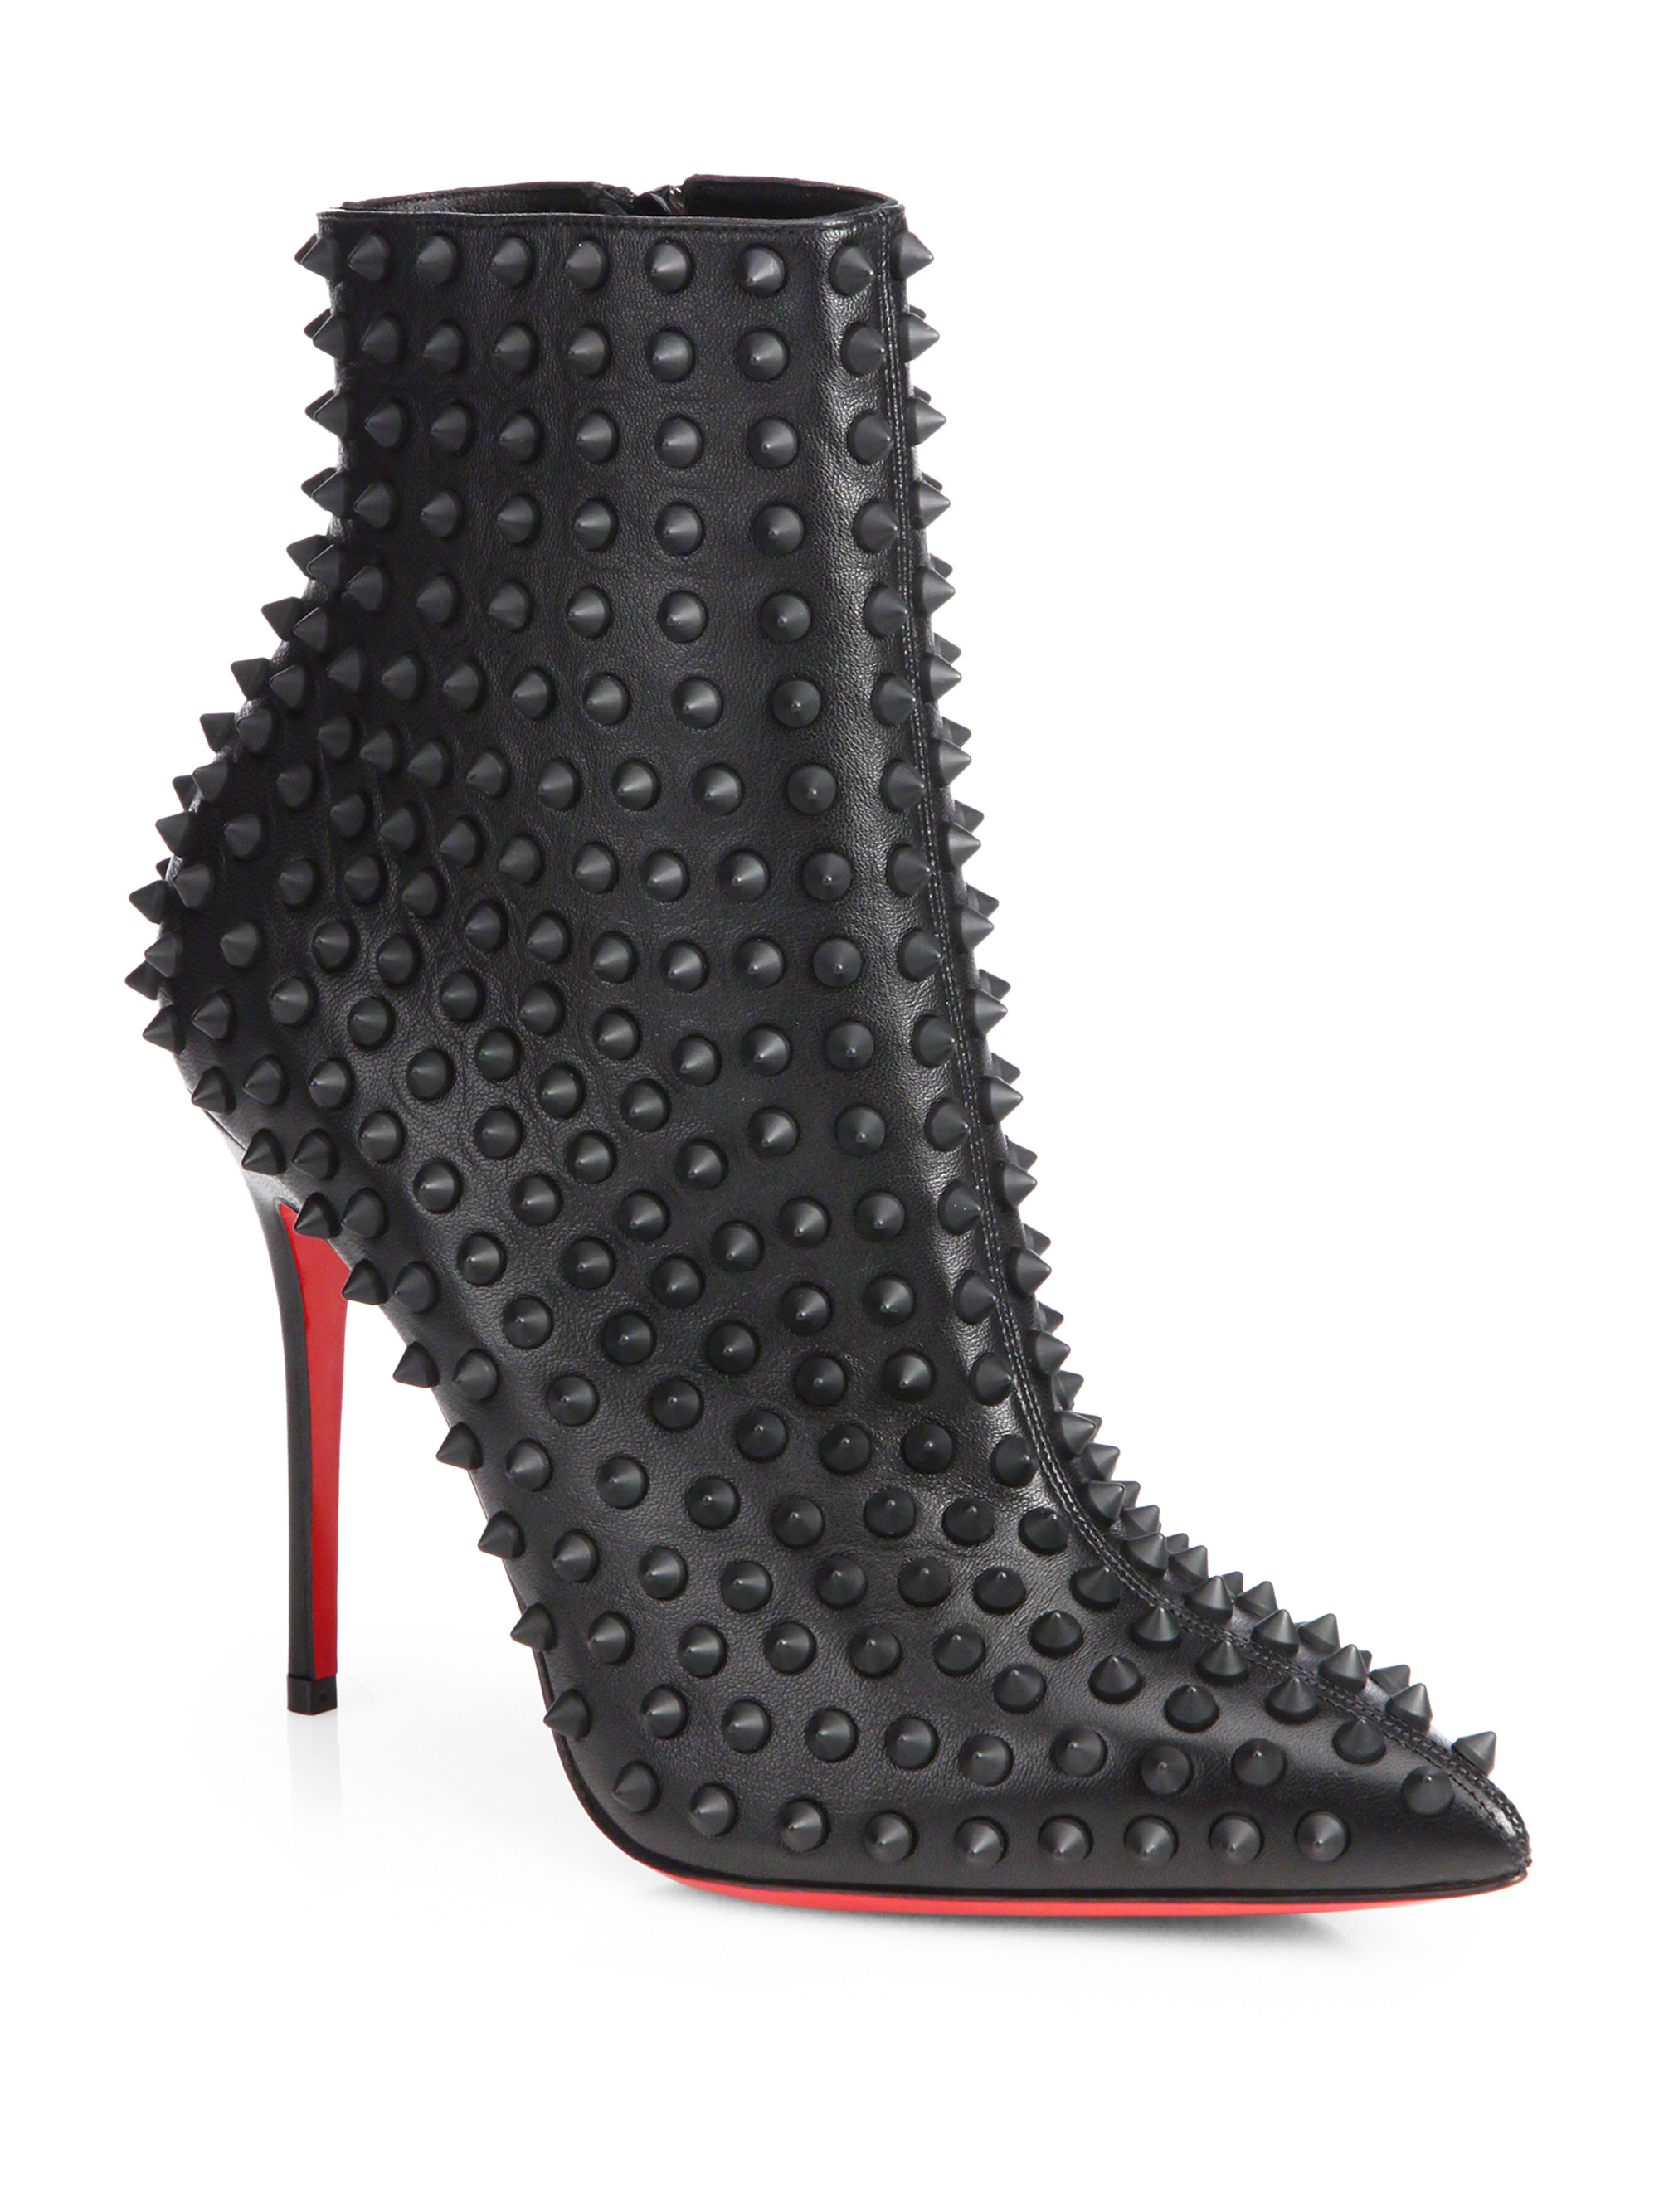 Lyst Christian Louboutin Snakilta Spiked Leather Ankle